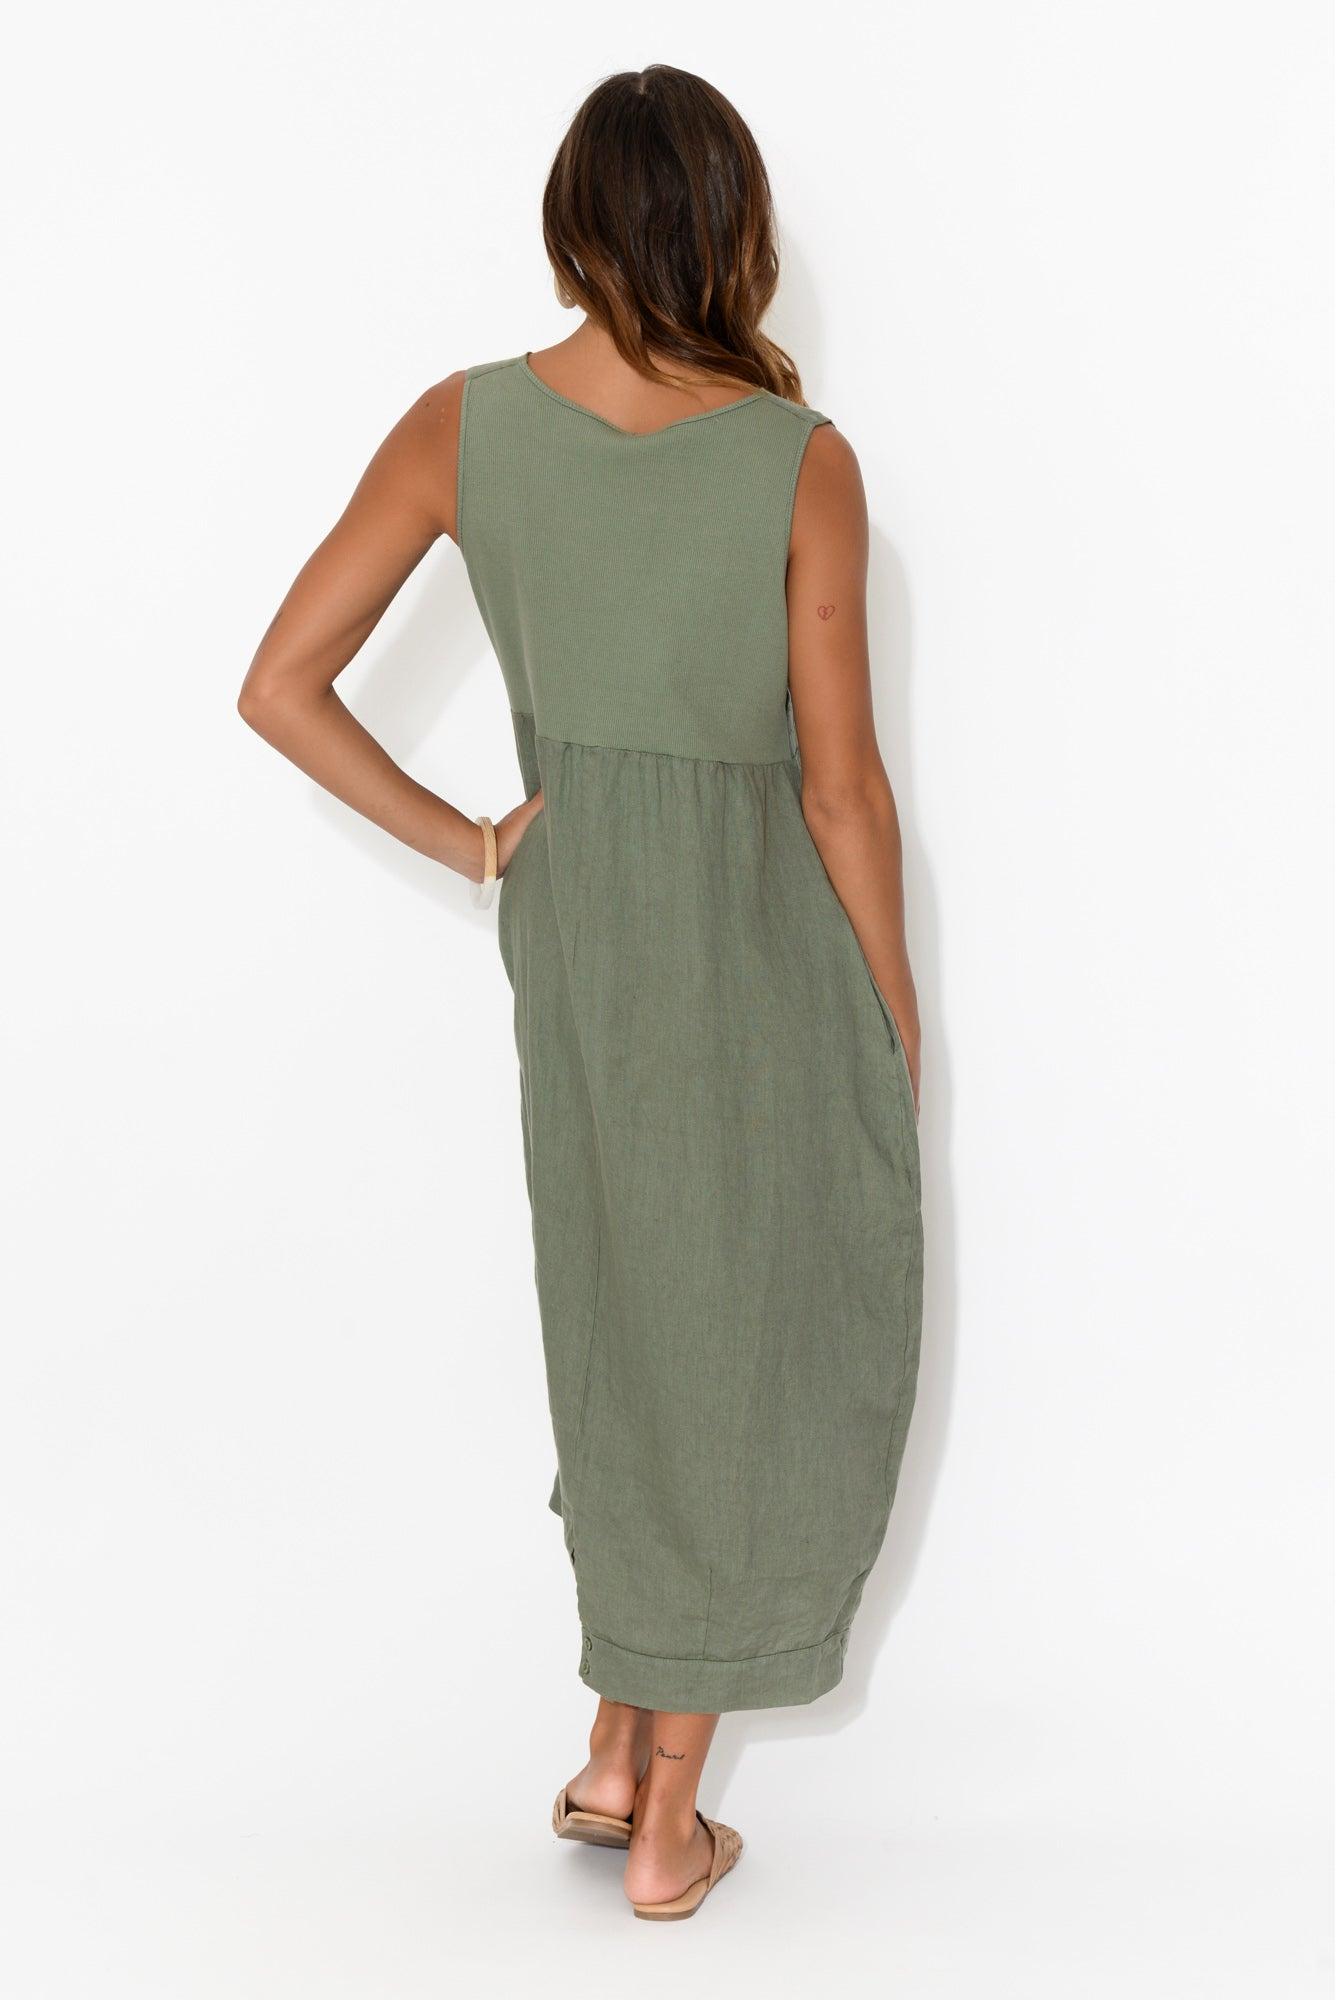 Jenny Khaki Sleeveless Linen Dress